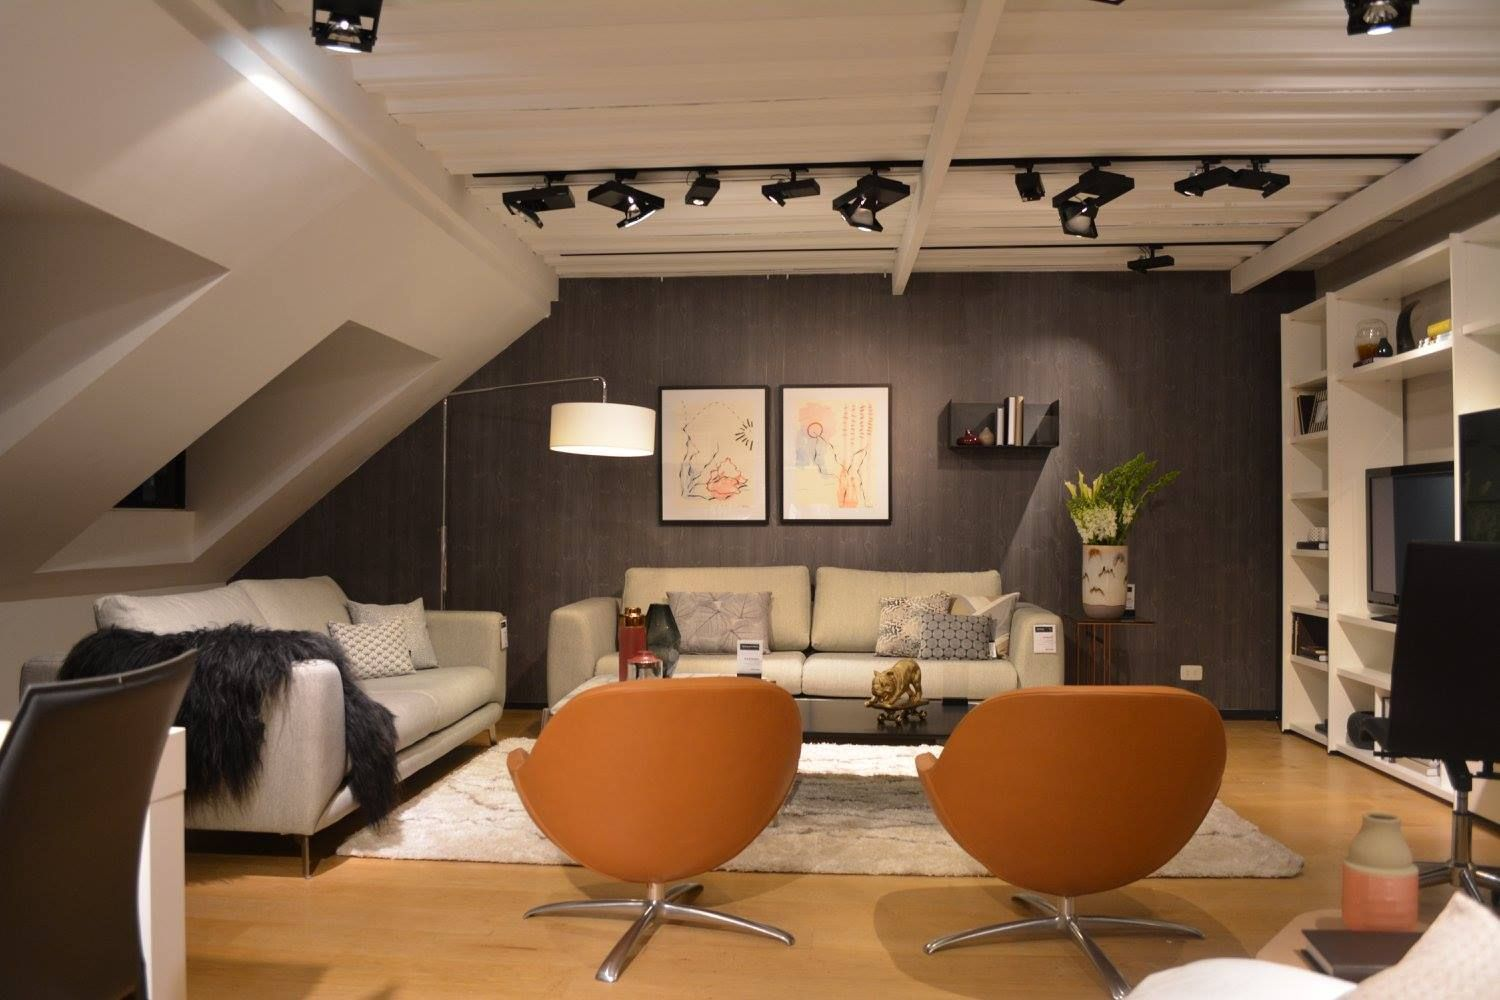 Boconcept Osaka Sofa Imola Chair Kuta Lamp Lugo Coffee Tables  # Meuble Tv Monza